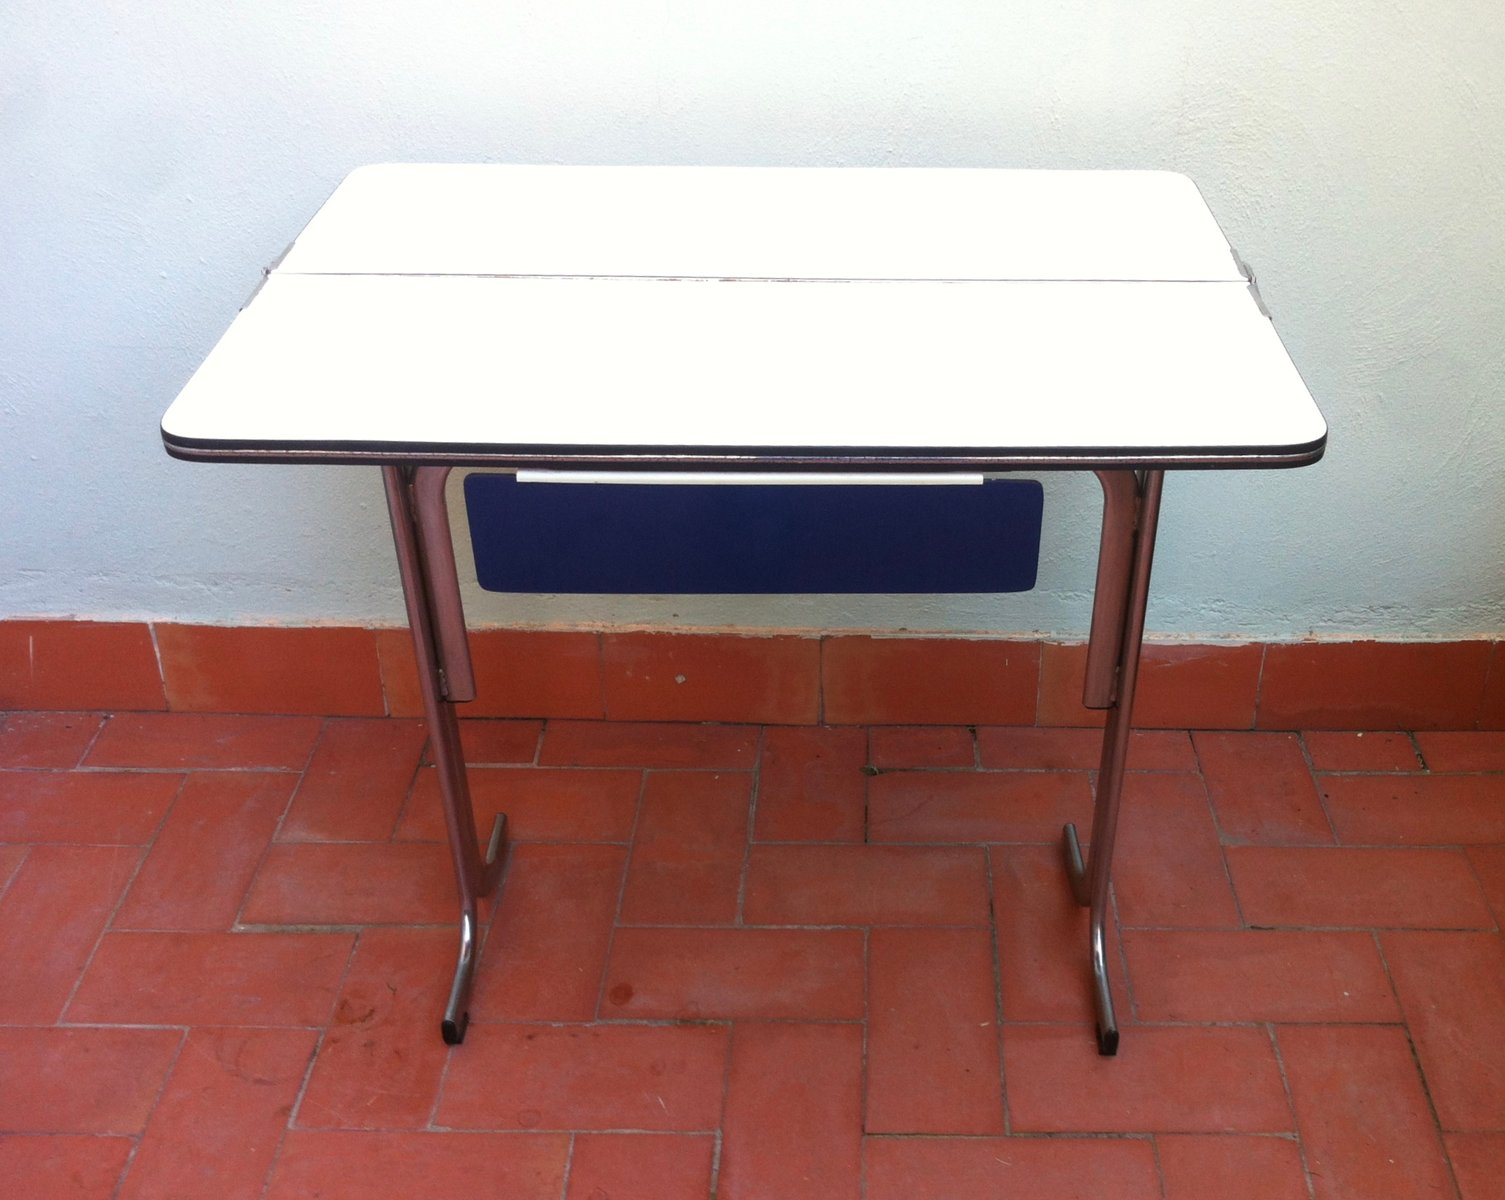 Latest table de cuisine pliable avec tiroir en formica for Table de cuisine pliable